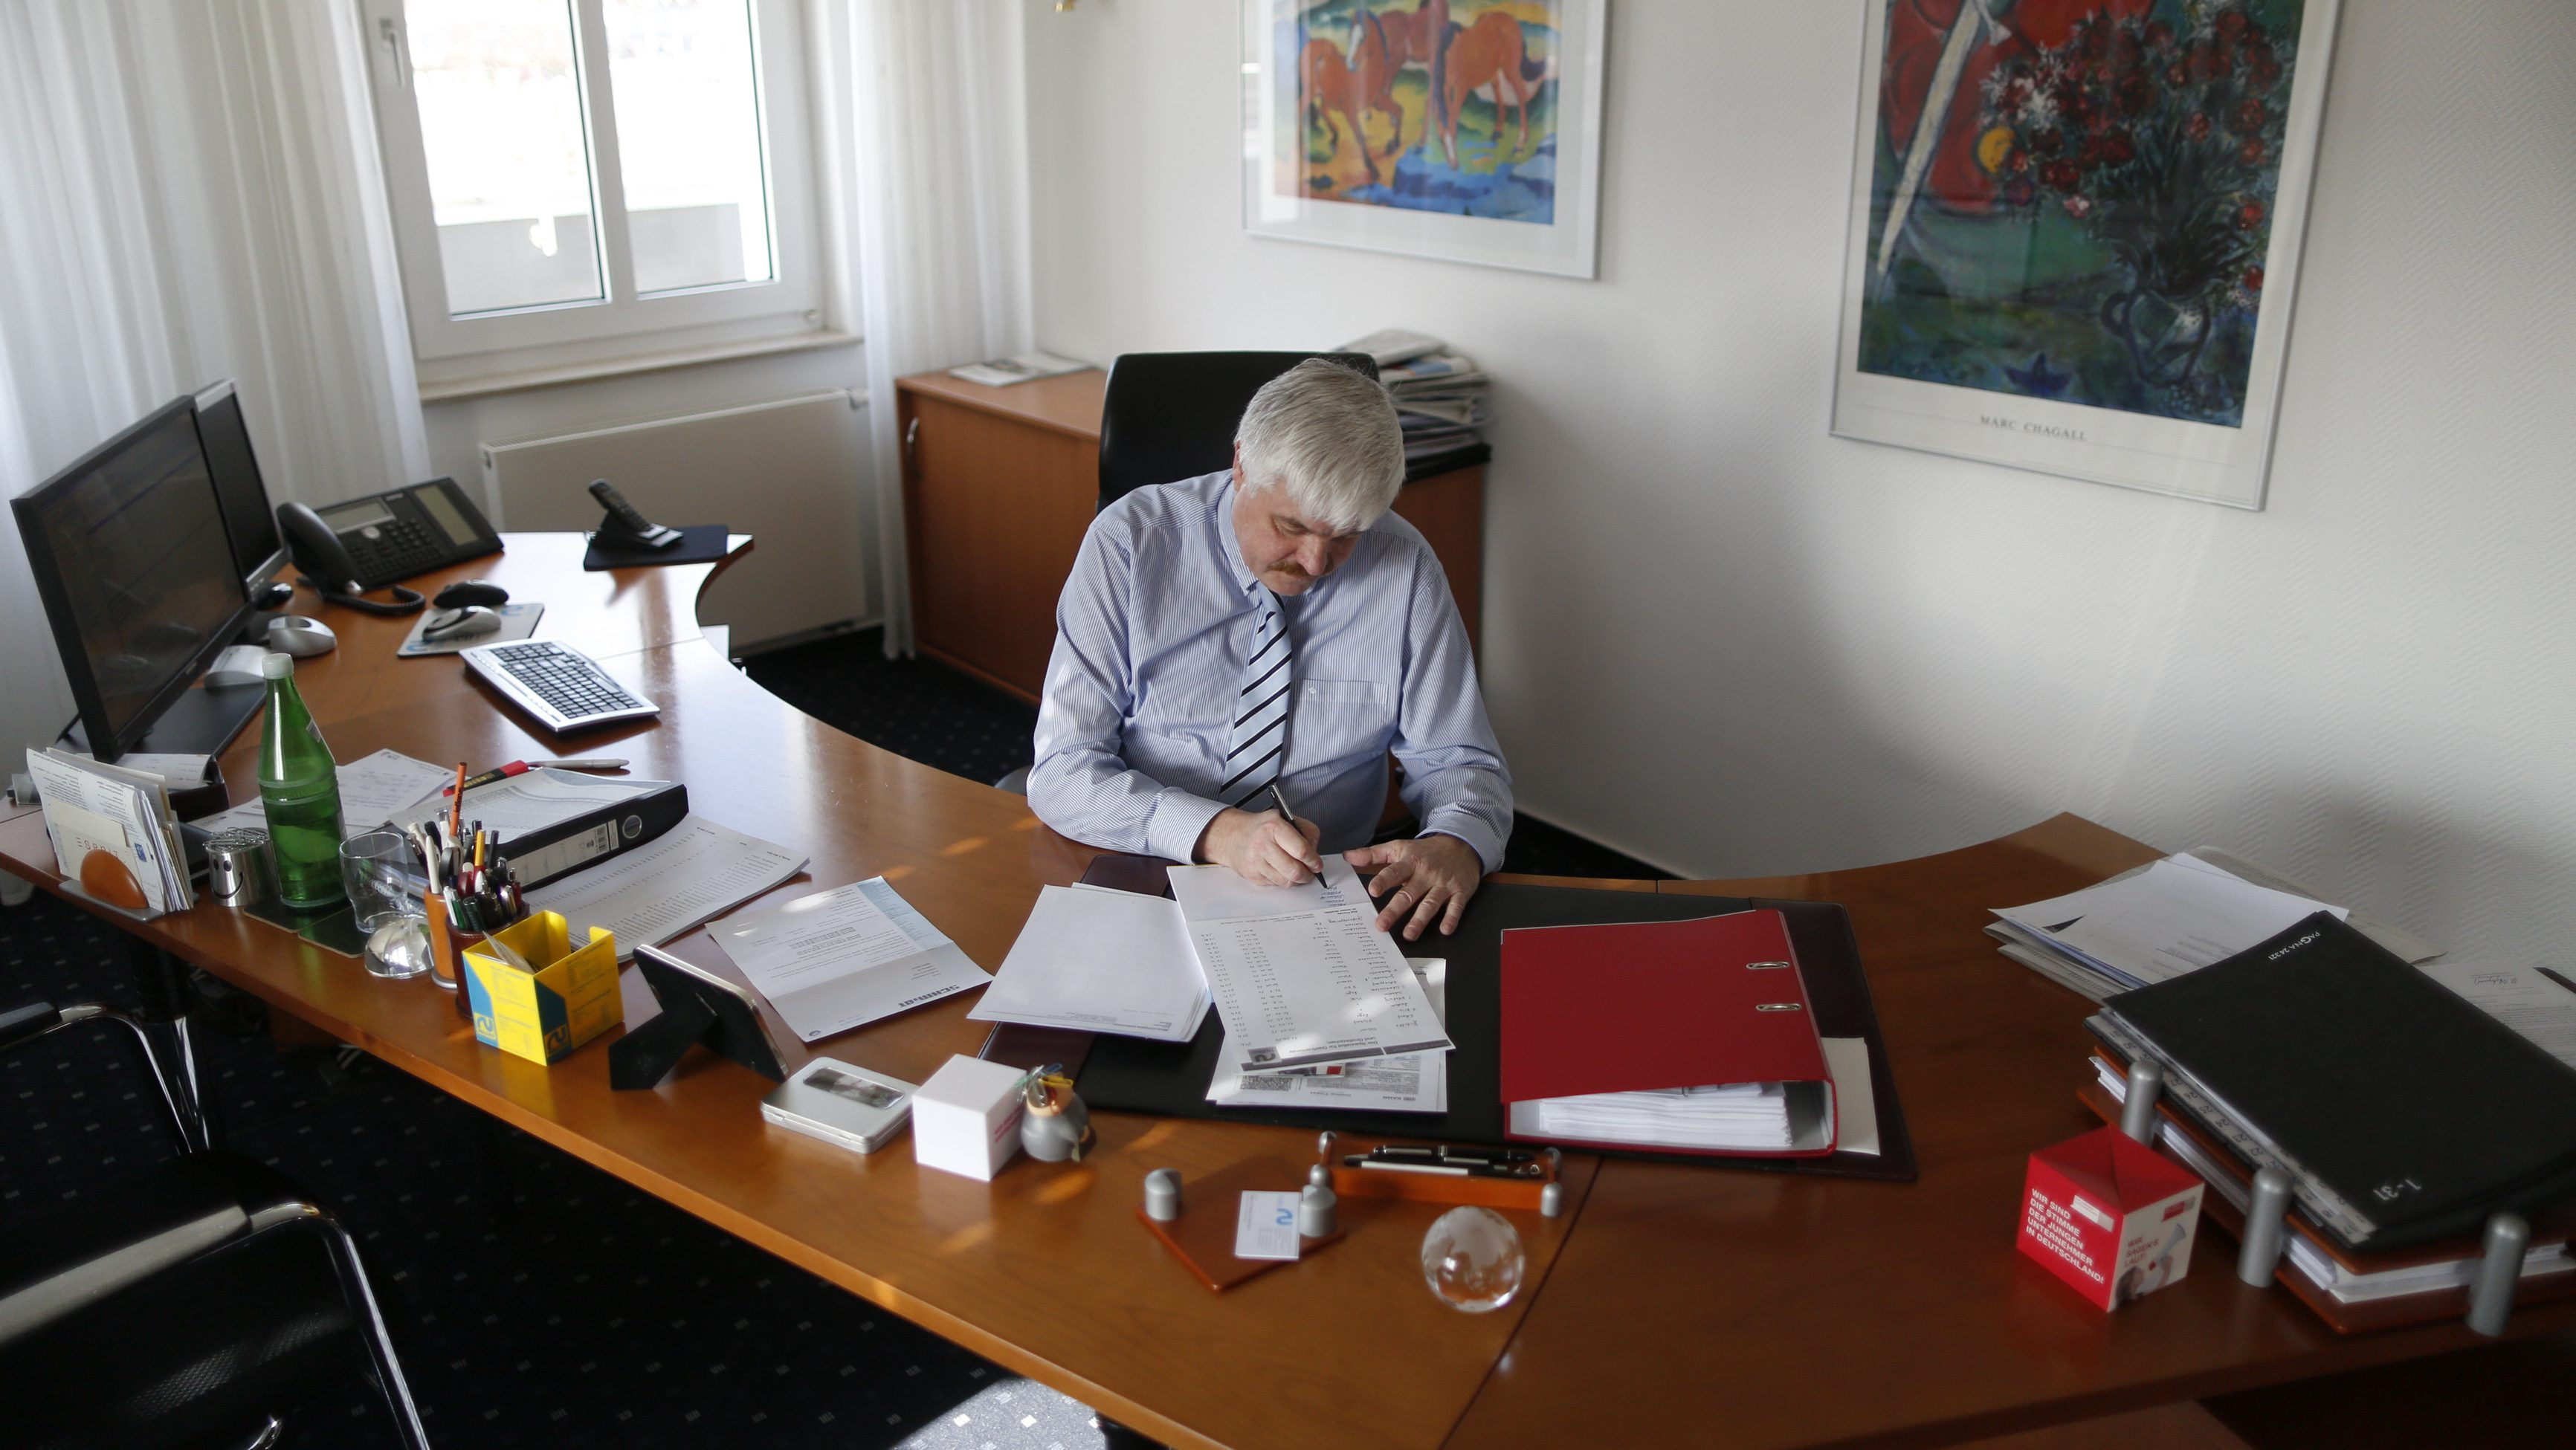 Roger Schnecke, a 56-year old sales representative is pictured at his office at the headquarters of Rullko wholesale in Hamm March 4, 2014.